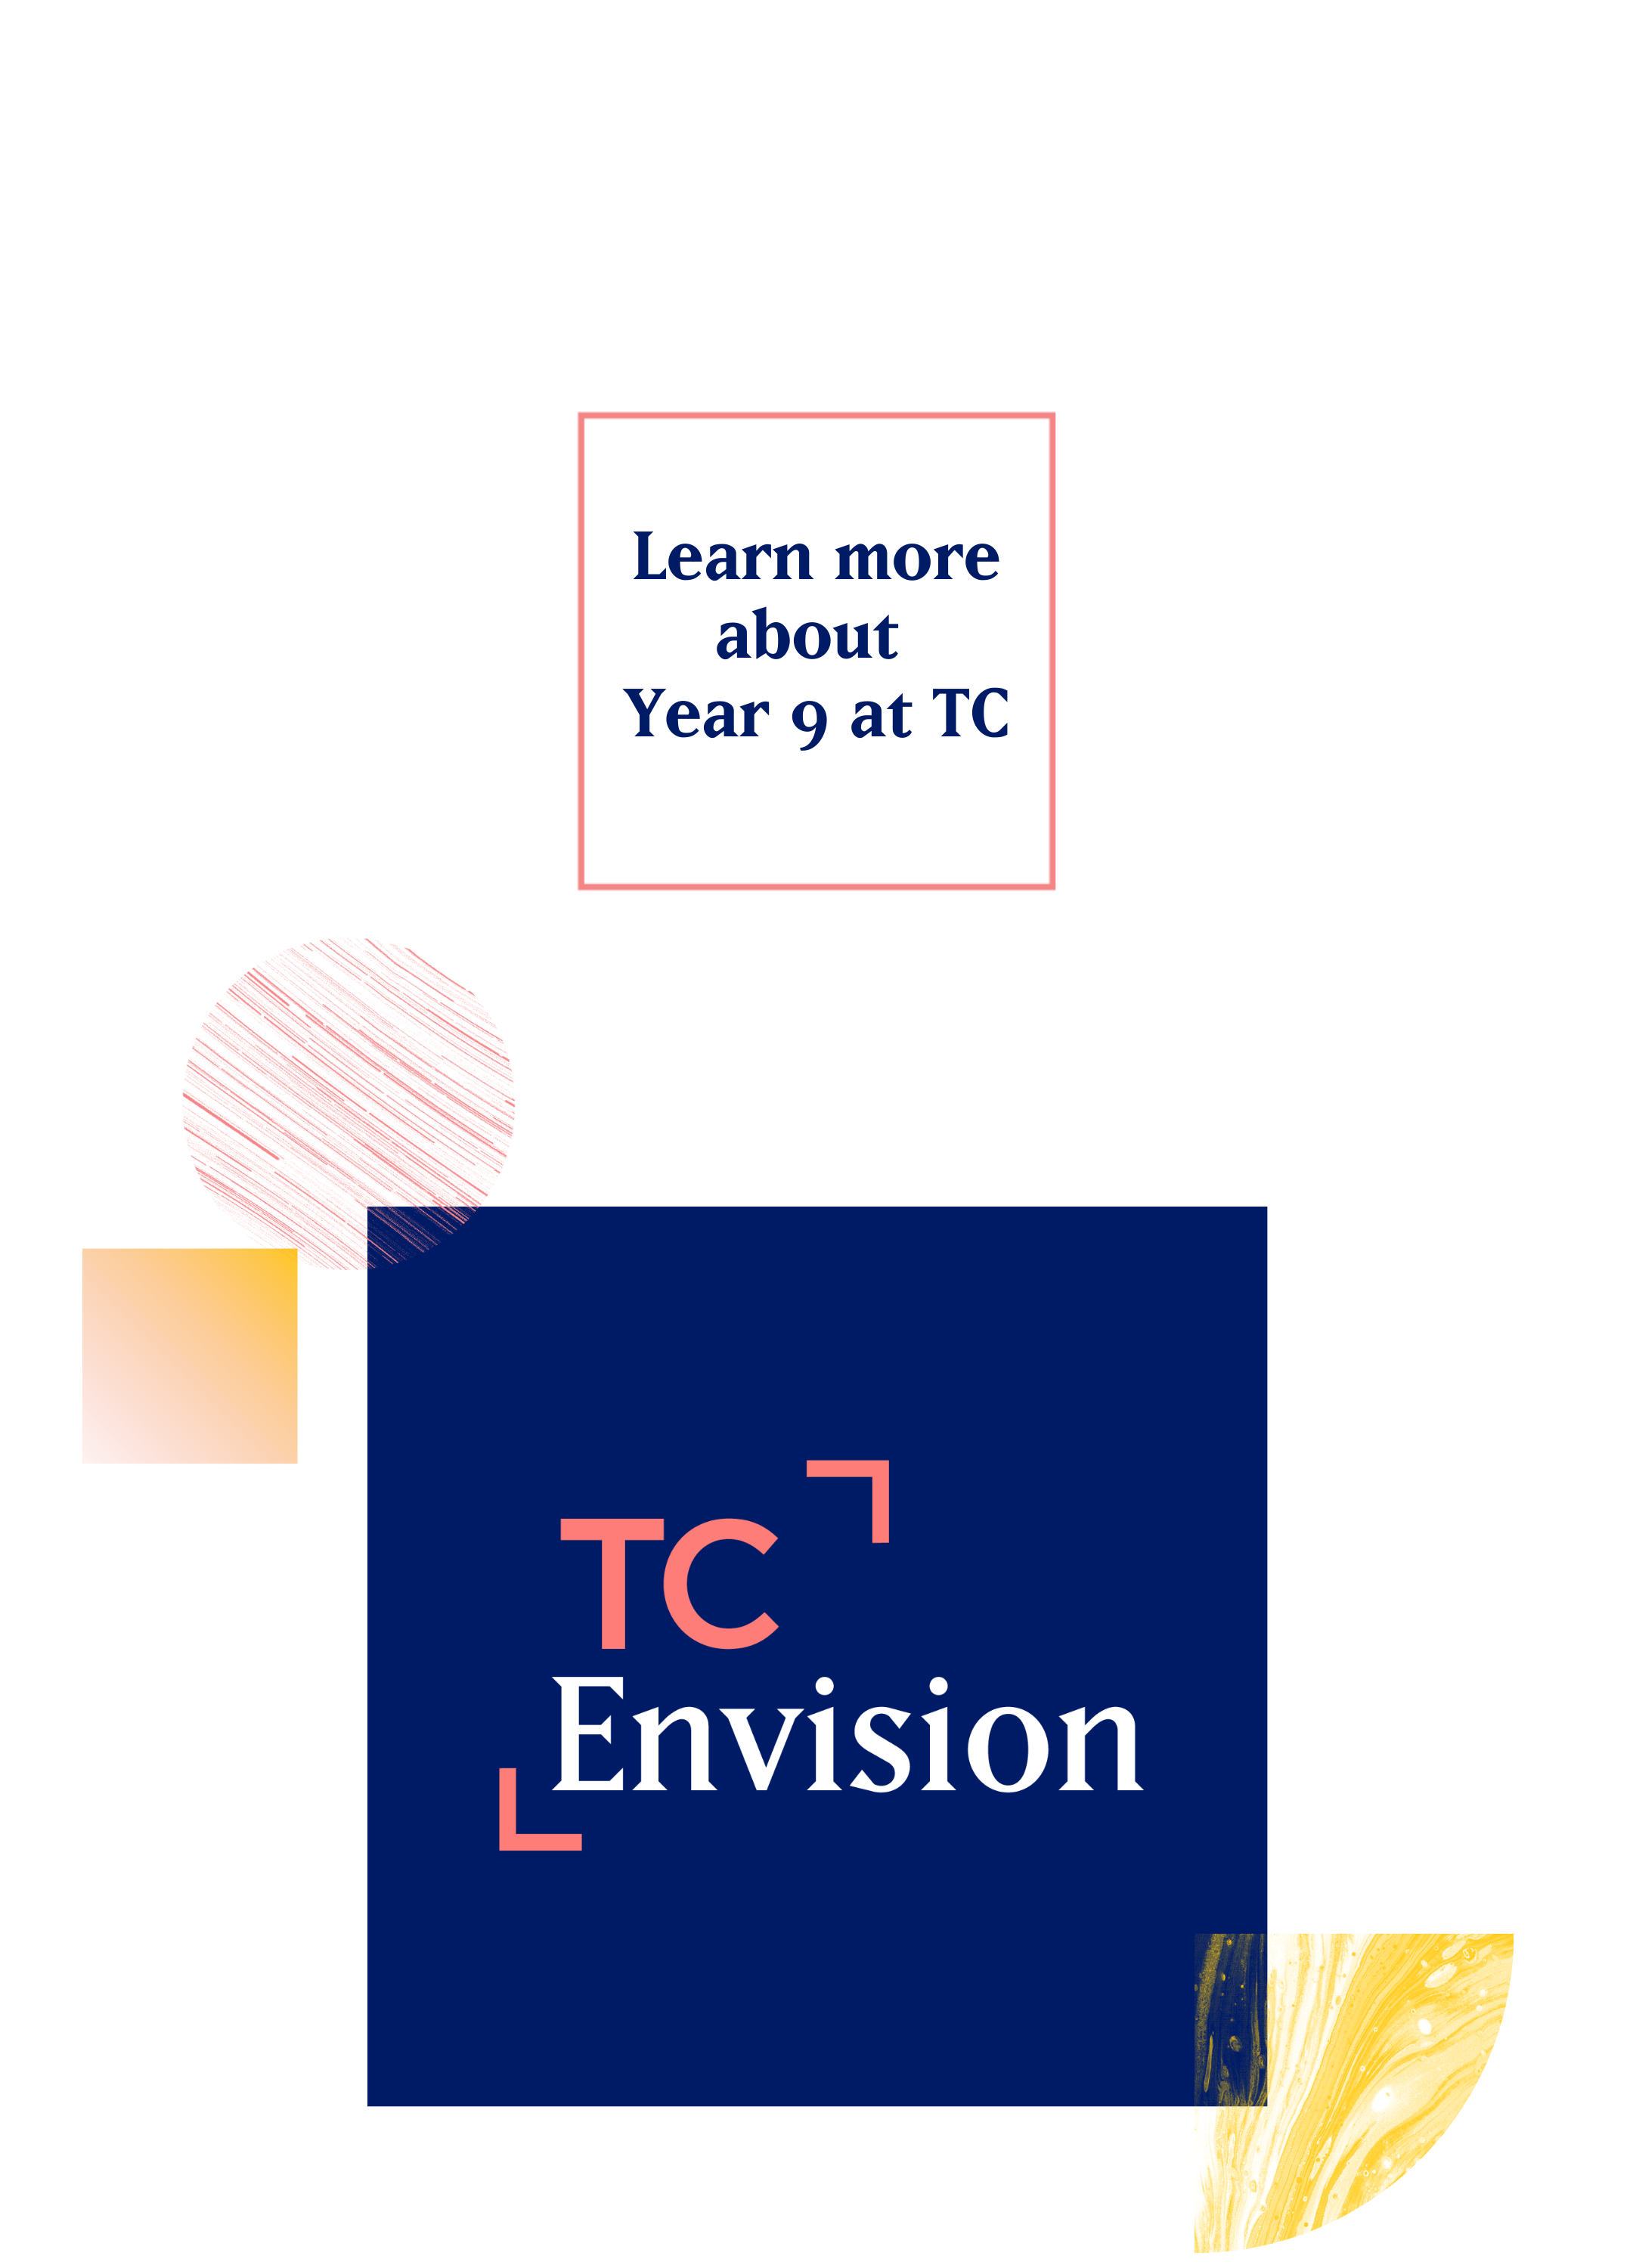 tc envision year 9 poster